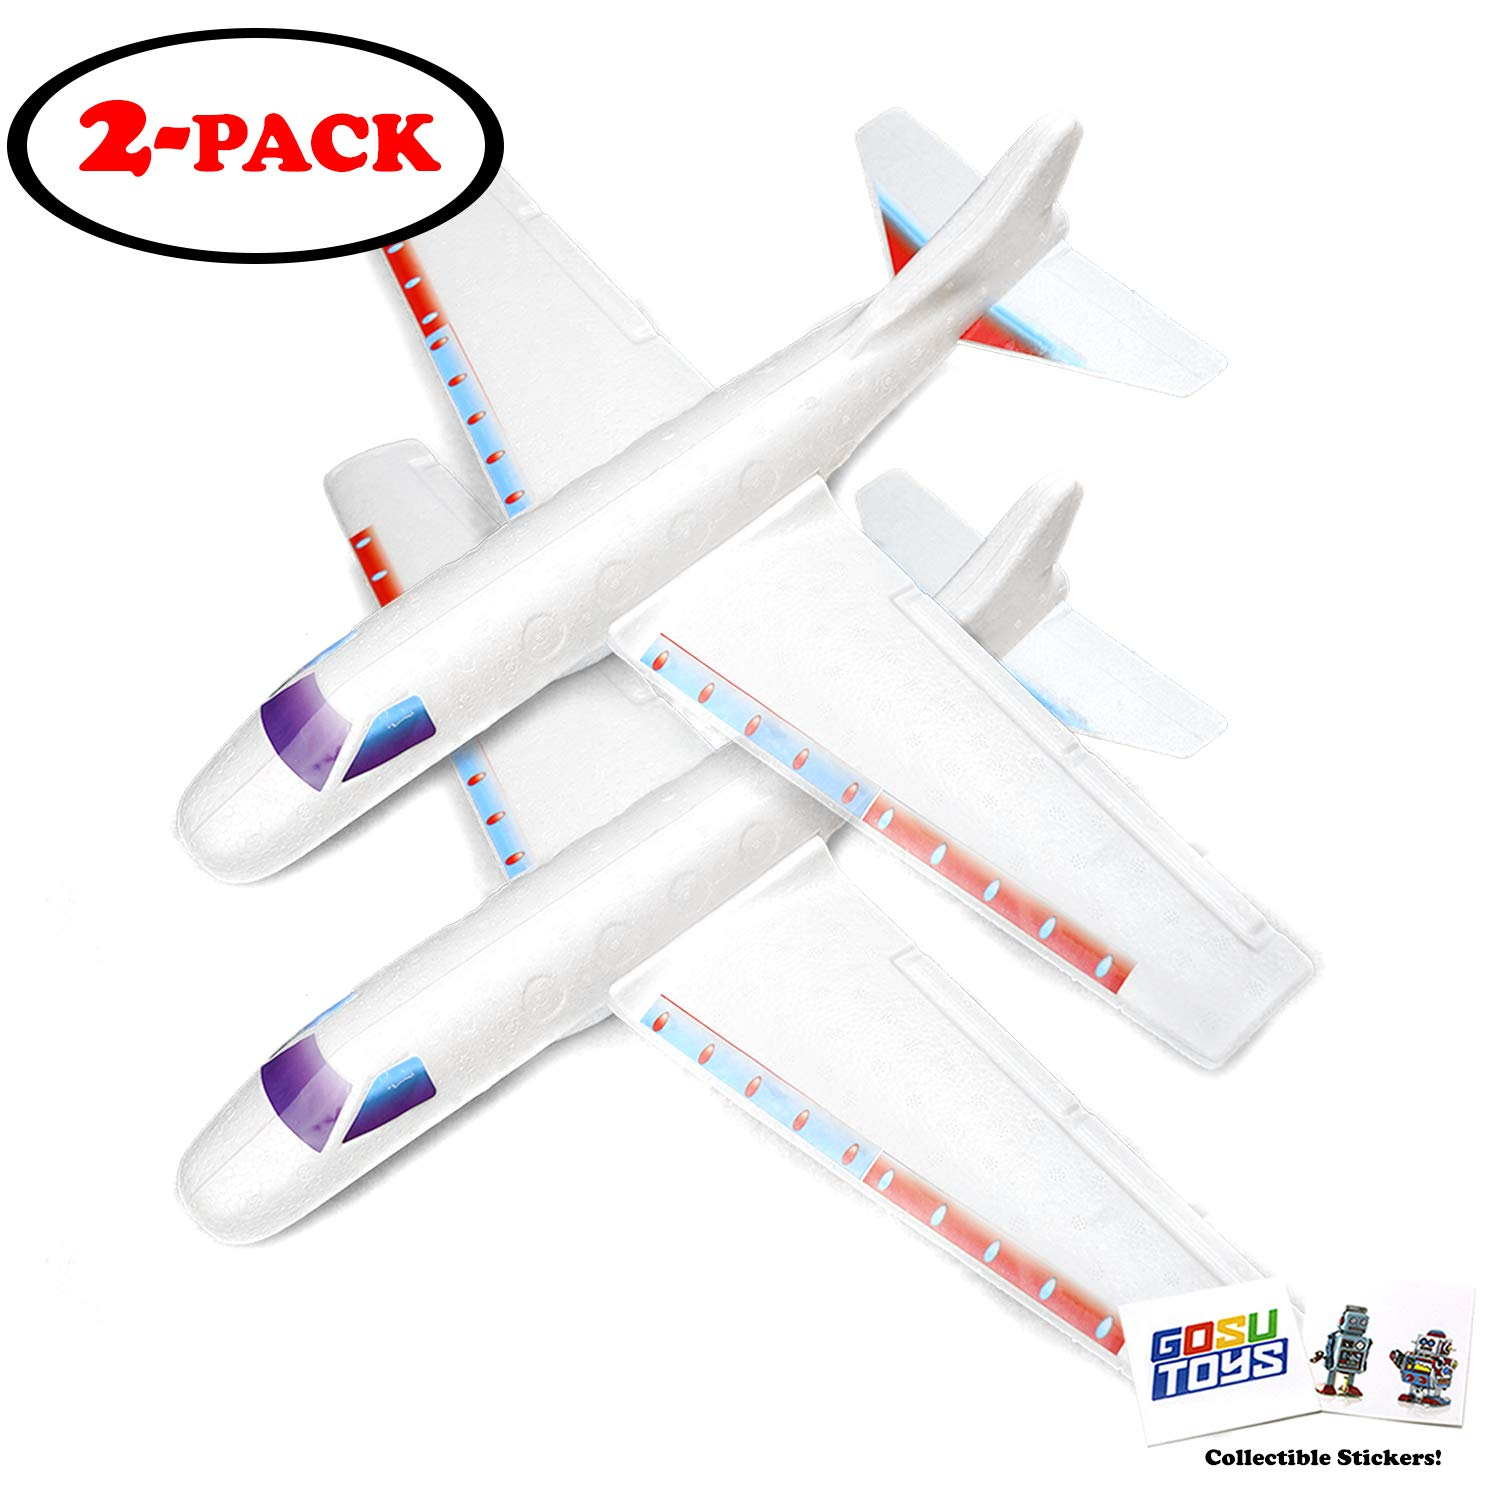 22 Giant Airplane Glider for Kids with 2 GosuToys Stickers - Flying Toy Build It, Throw It and Watch It Glide - Hours of Outdoor Fun by Gosu Toys